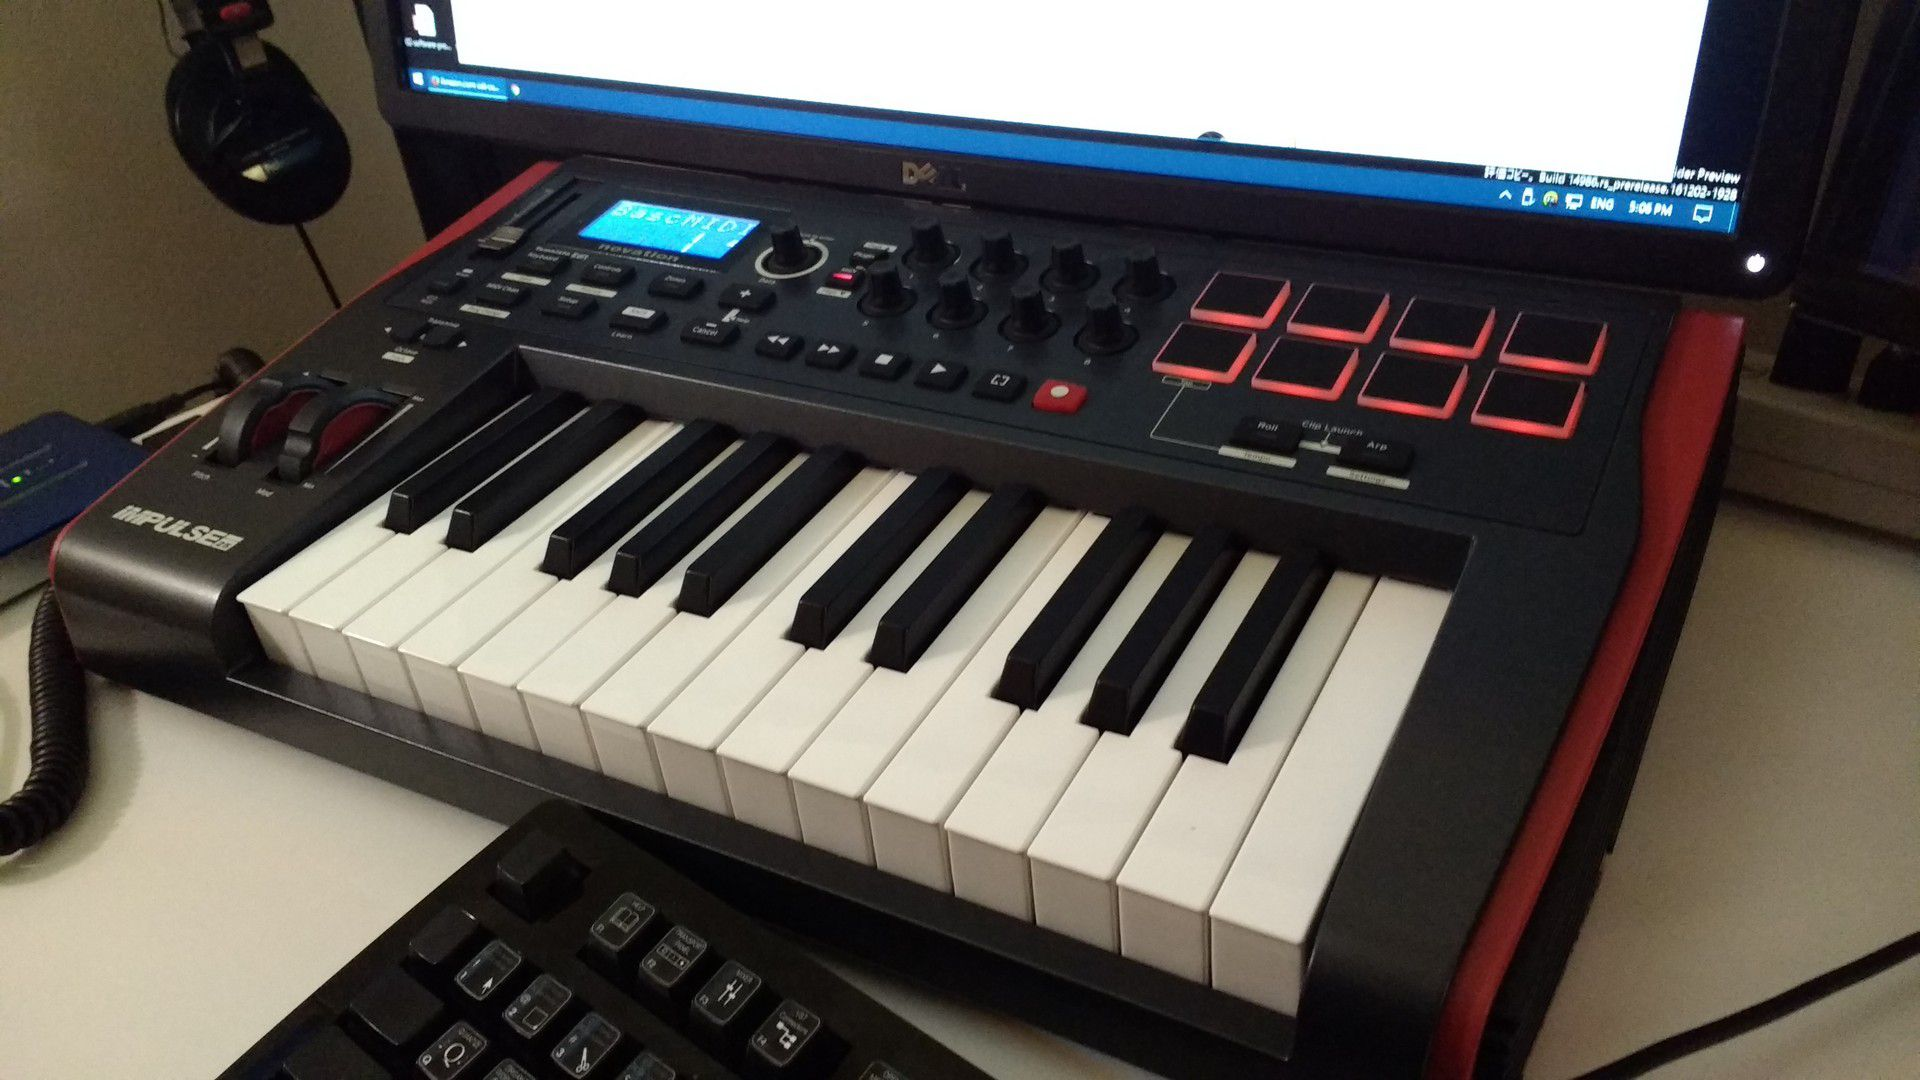 Novation Impulse 25 を購入